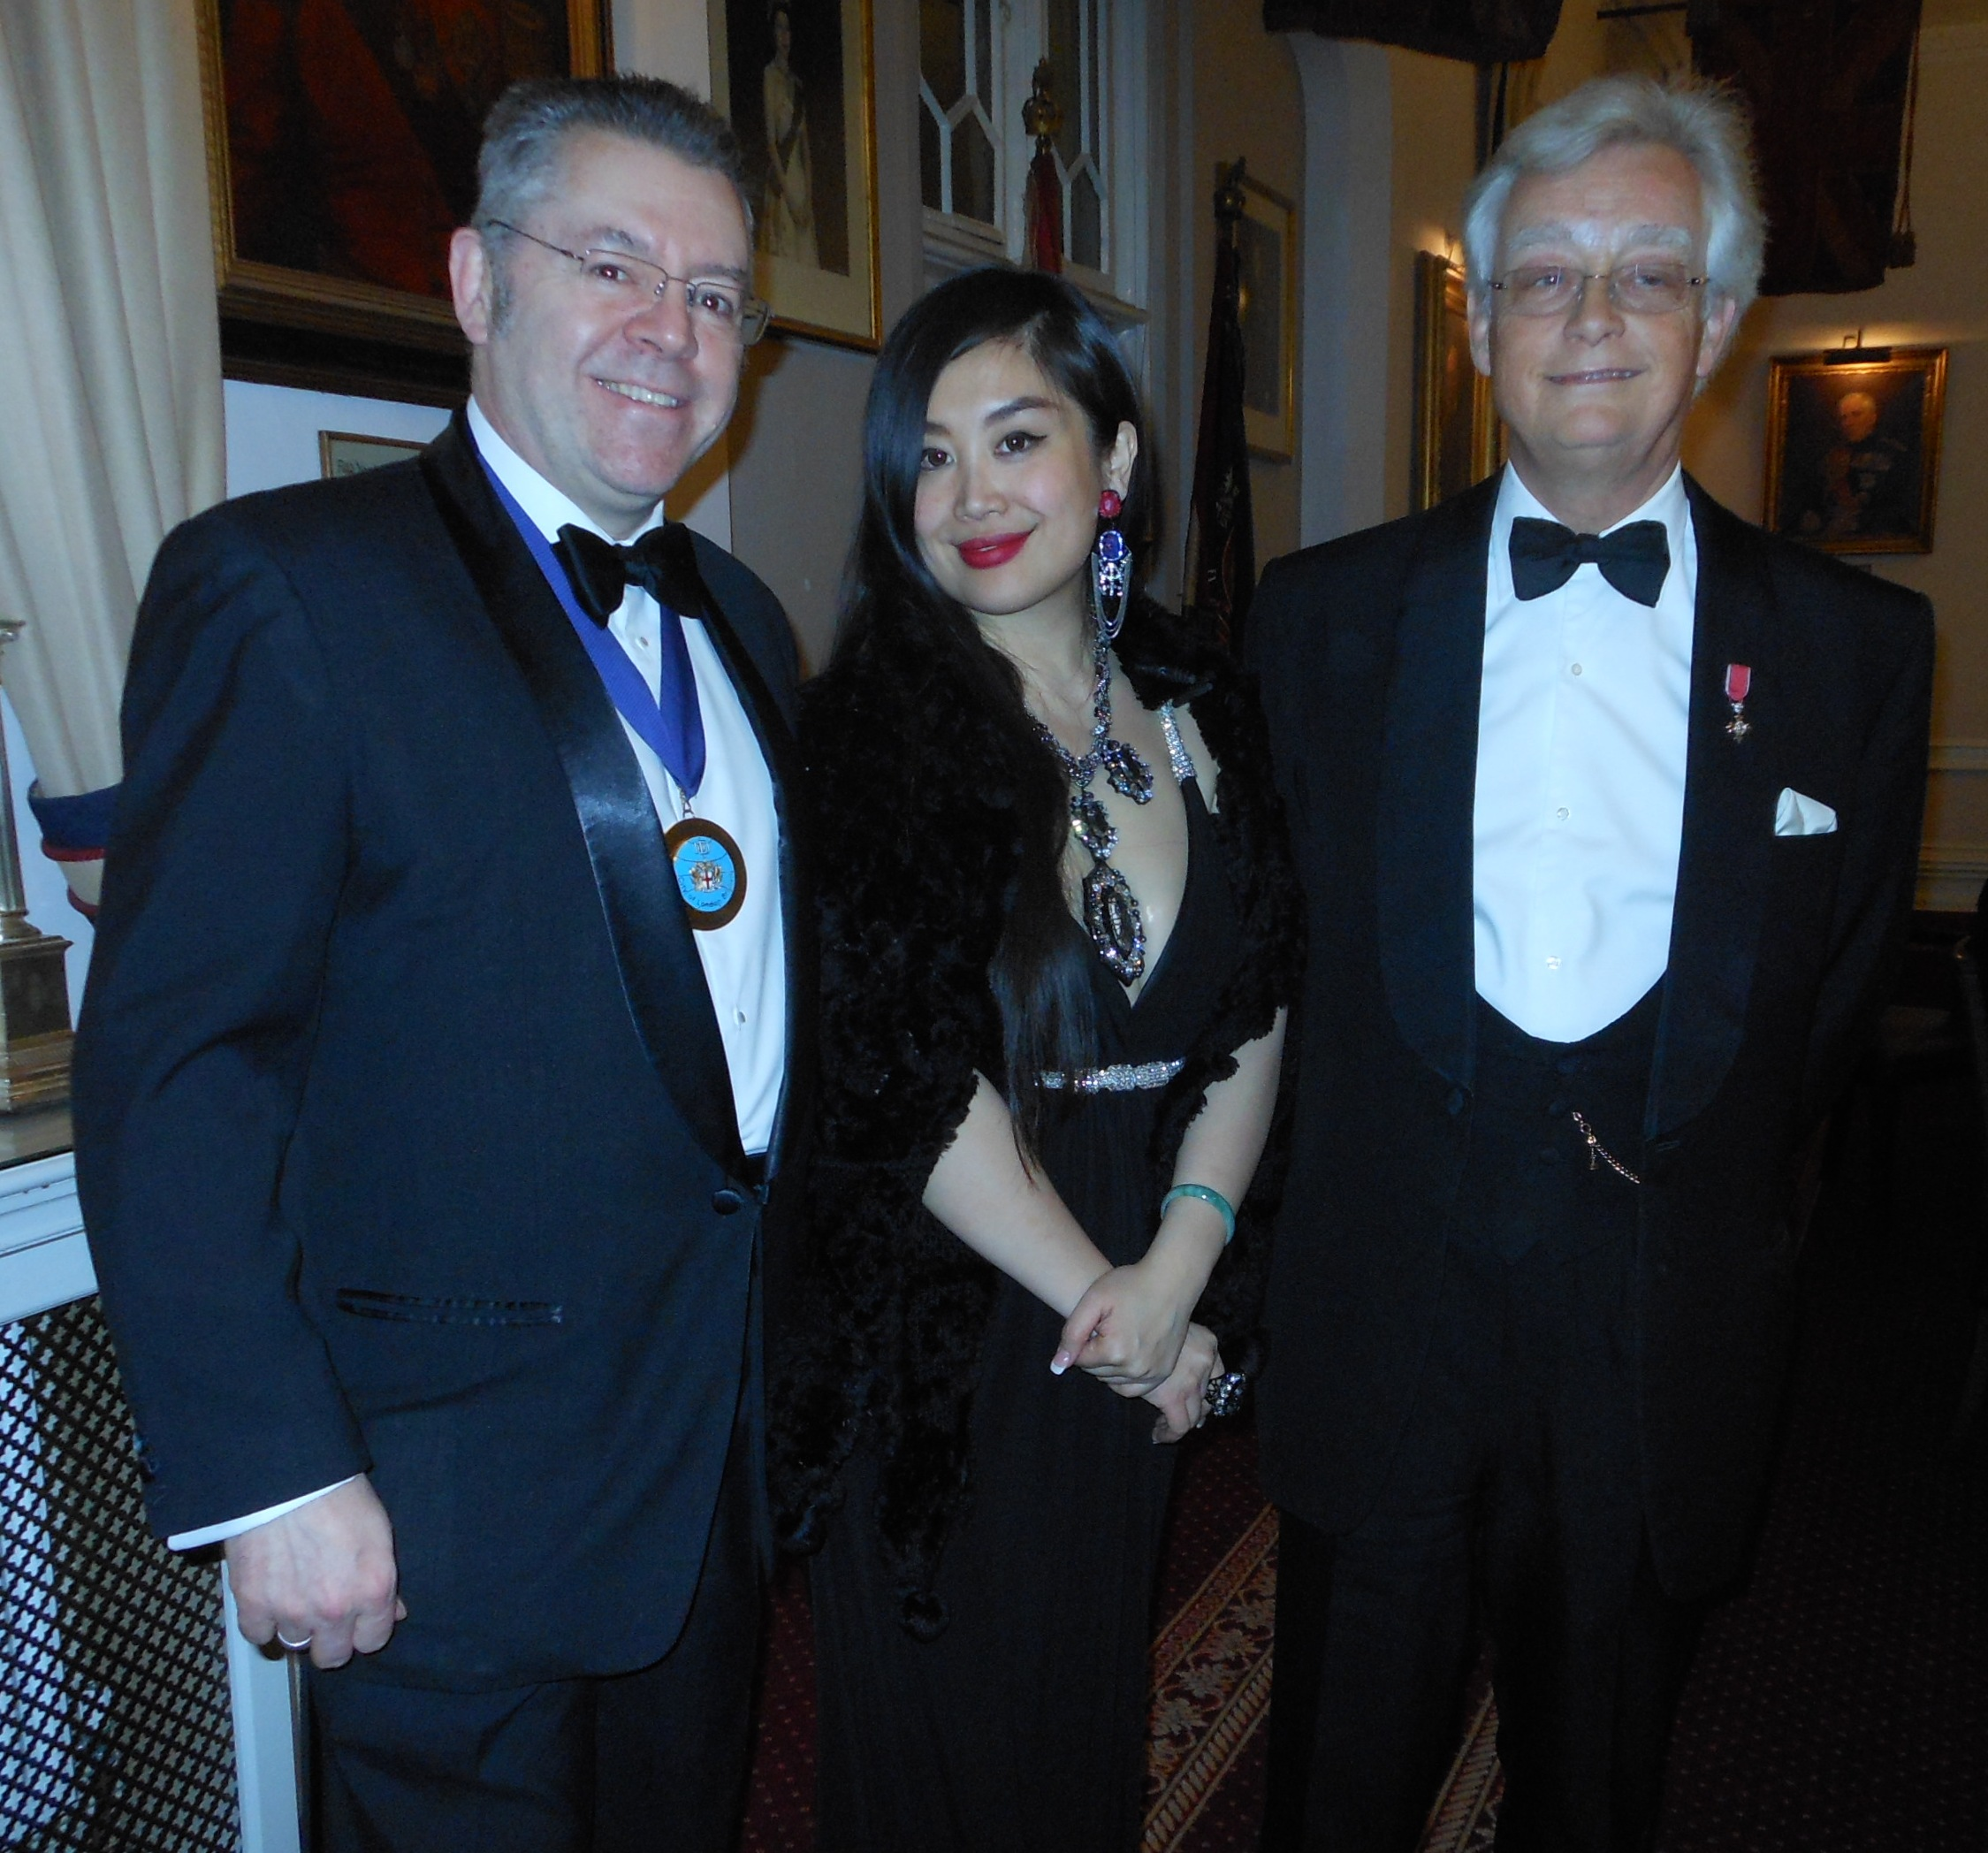 Left to right: Michael Hockney OBE, Grace Bian and David Stringer-Lamarre